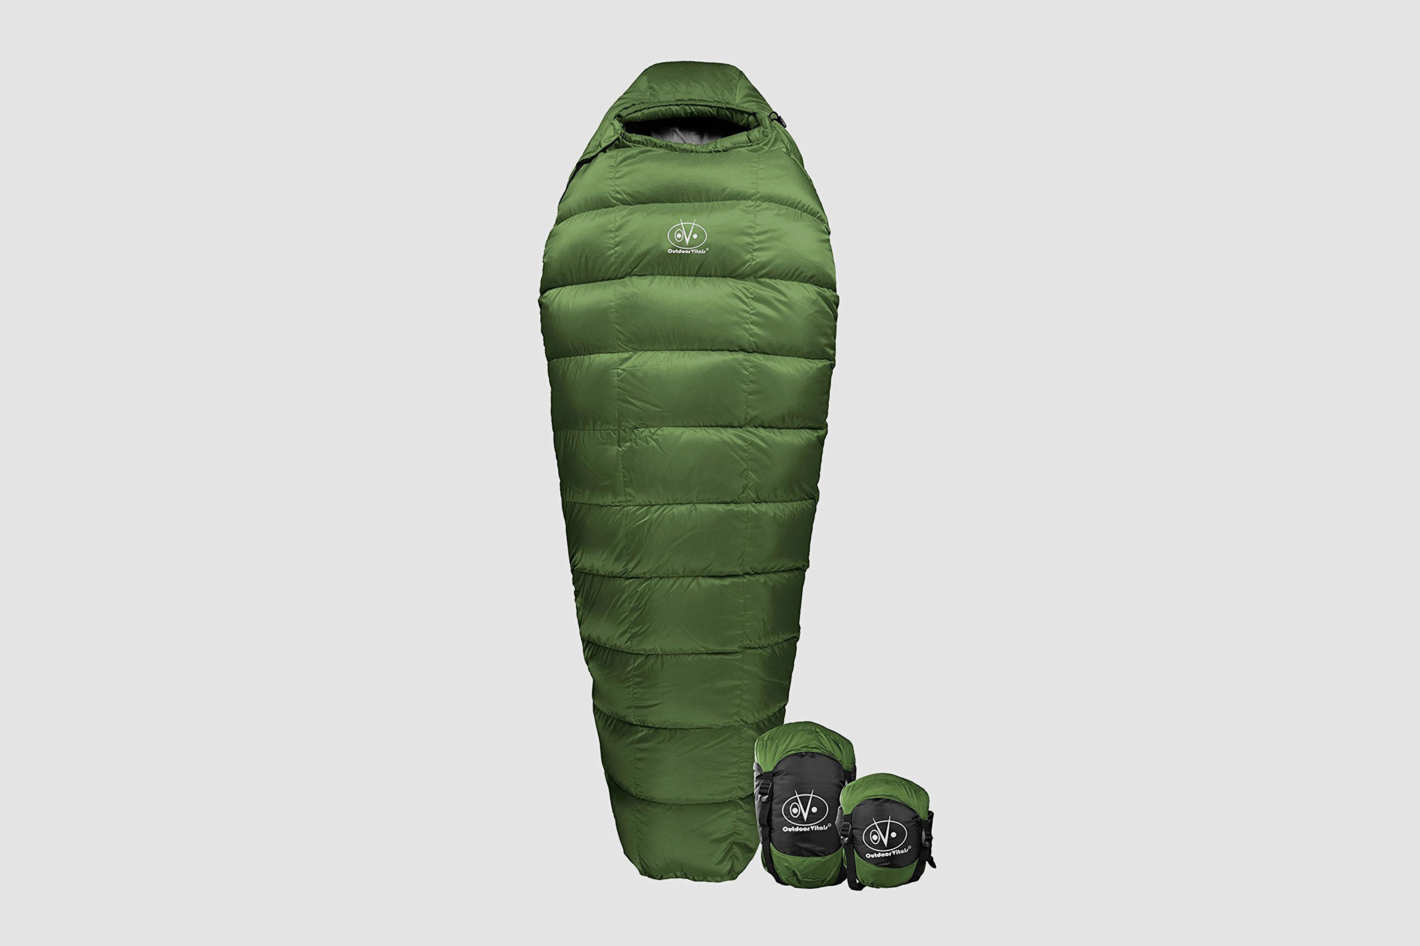 A green, mummy-style sleeping bag with two sleeping bag holders at the bottom right for reference